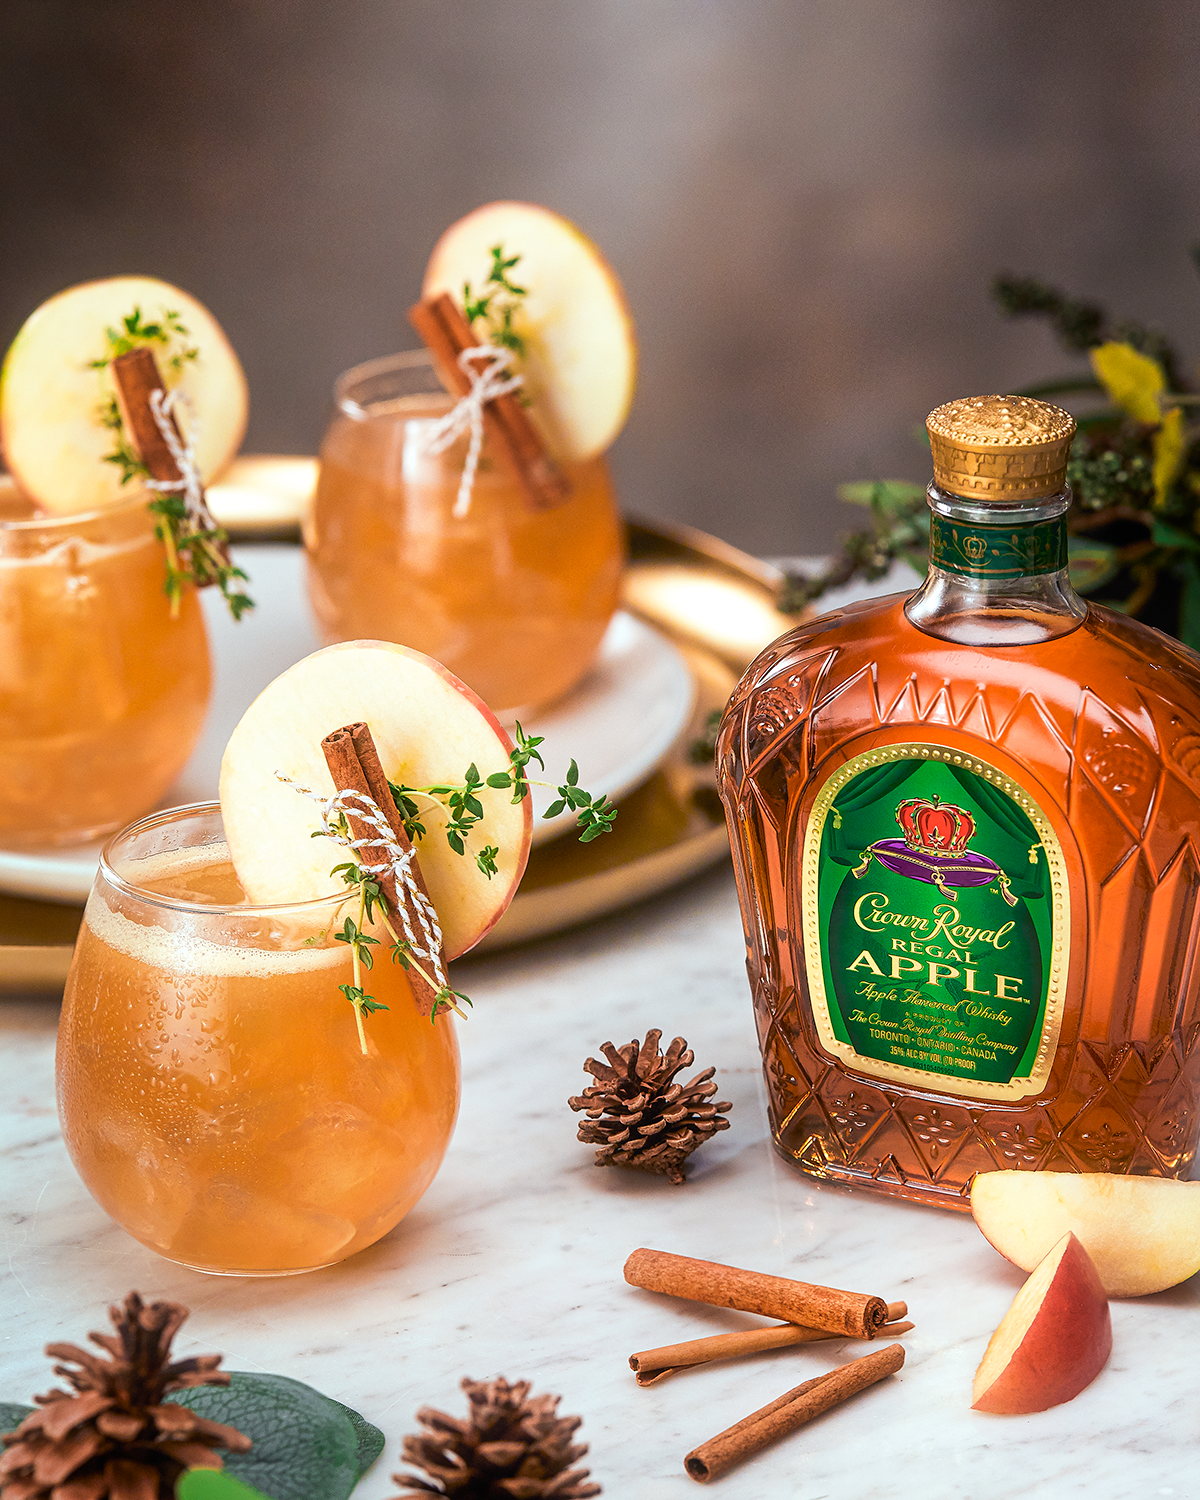 Crown Royal The Maple Apple Whisky Cocktail